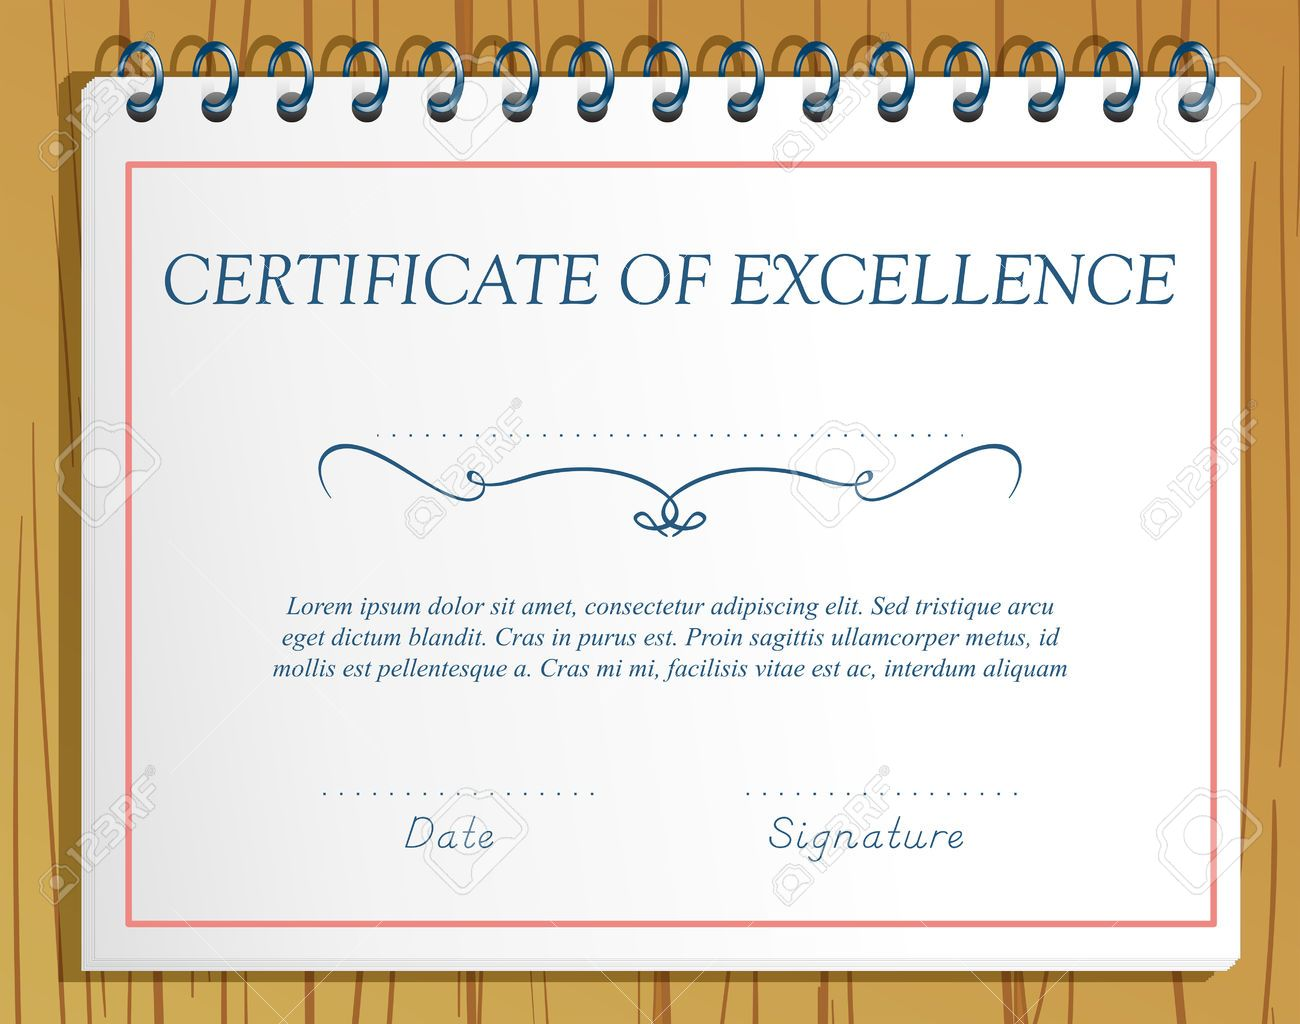 Doc480371 Sample Certificate of Excellence Education World – Certificate of Excellence Wording